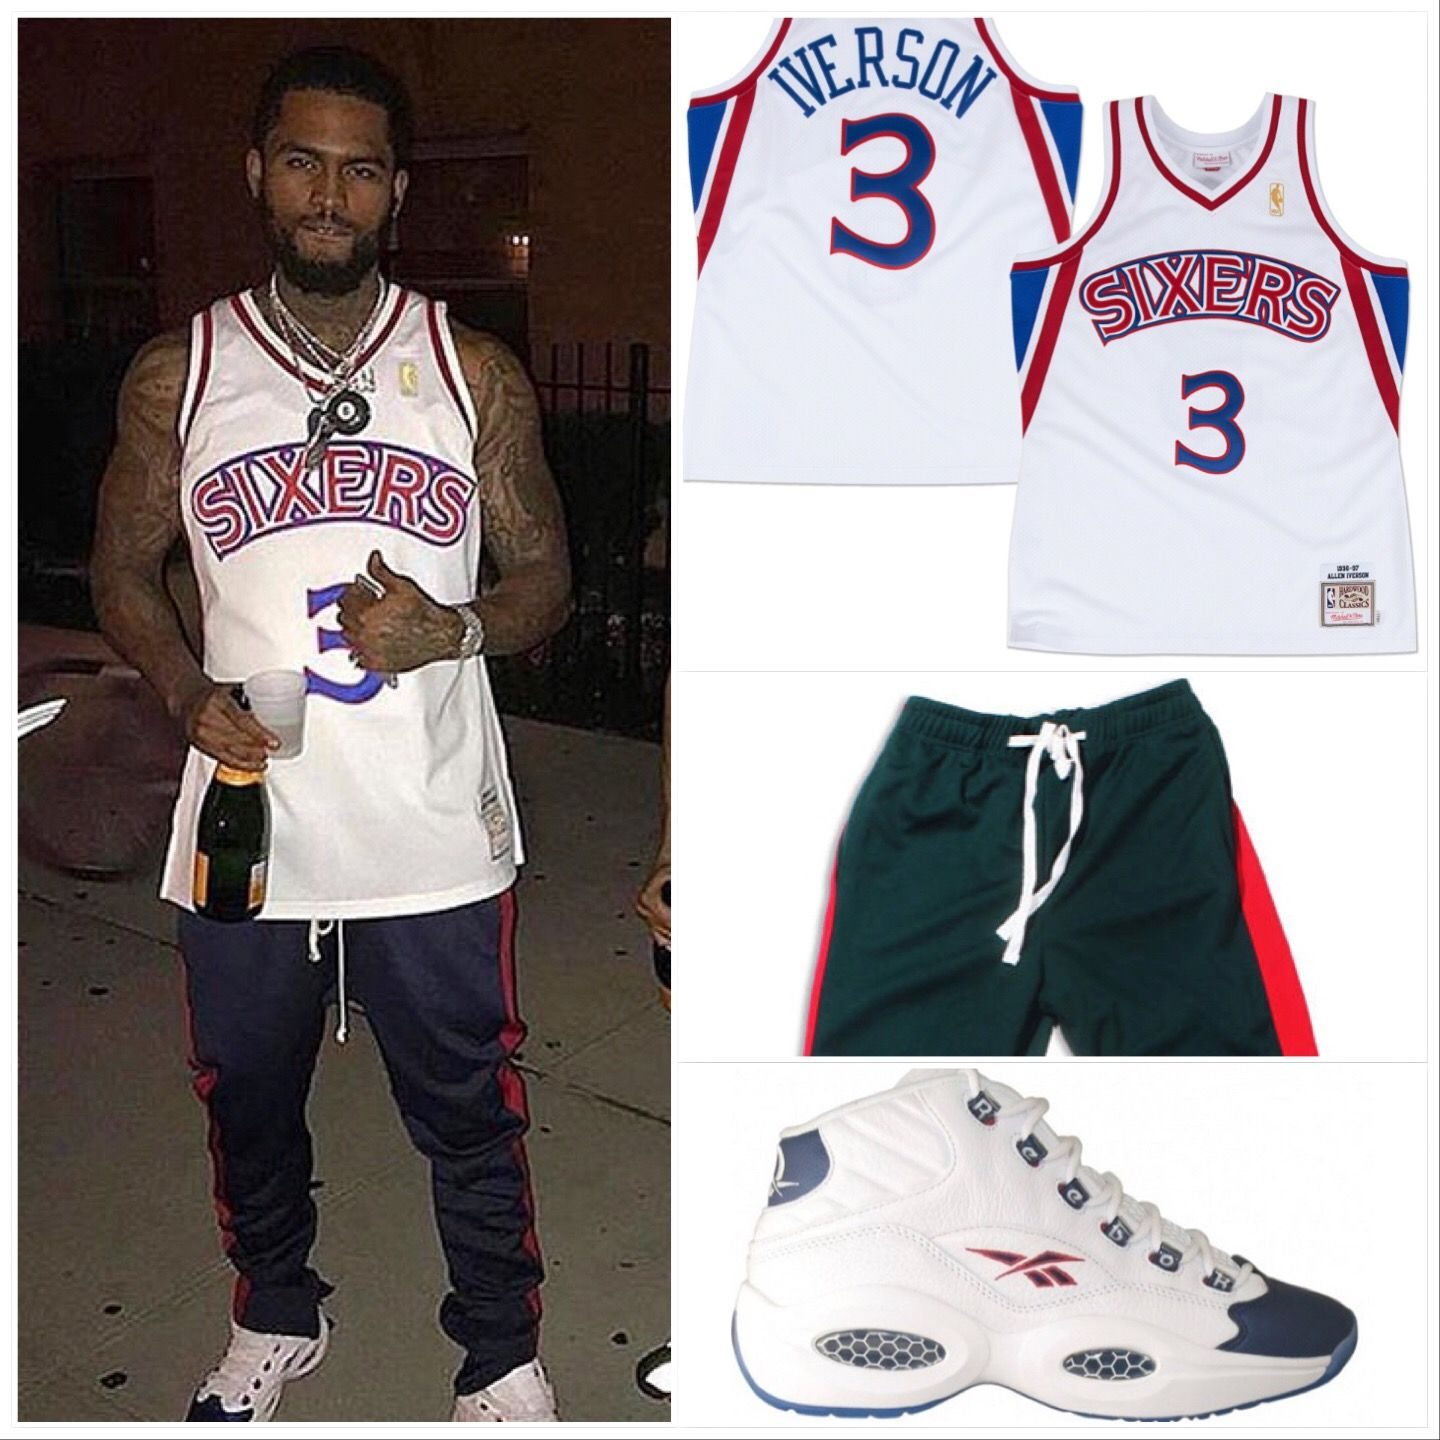 quality design 59db2 cb304 The Rapper In Allen Iverson NBA Jersey Sneakers and Reebok ...